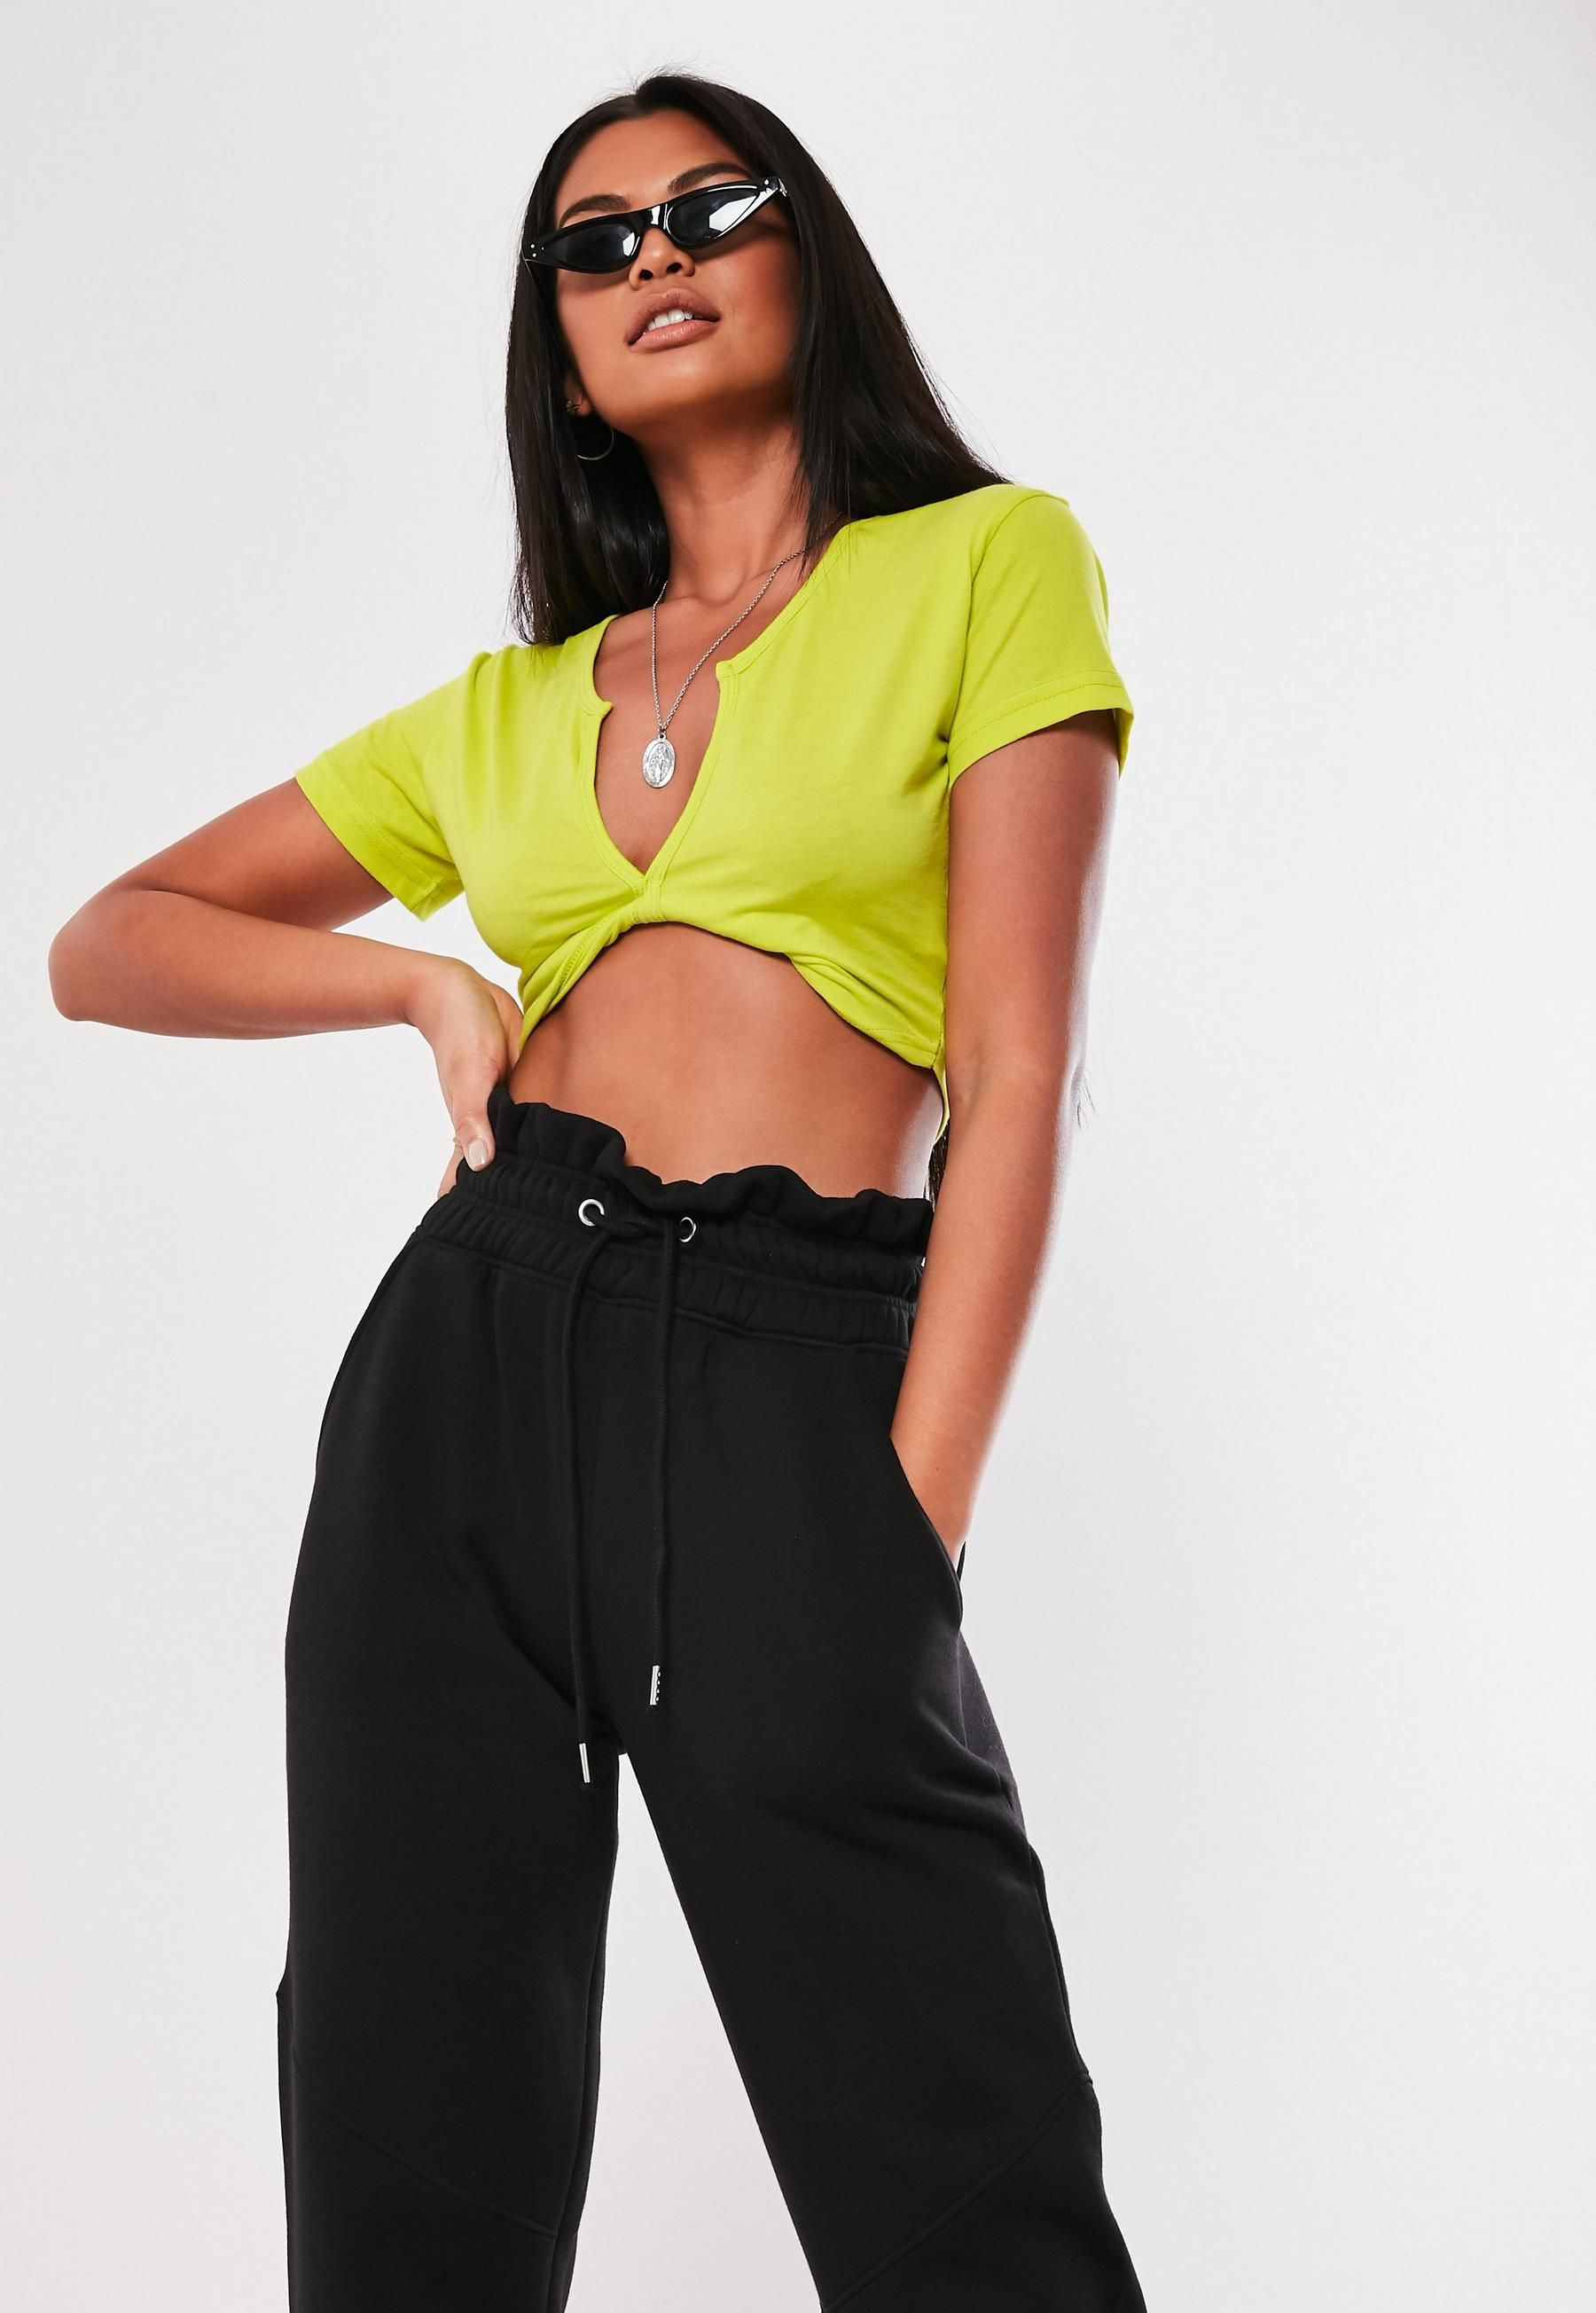 384b7ac2f5 Missguided - Neon Lime Short Sleeve V Neck Crop Top in 2019 ...